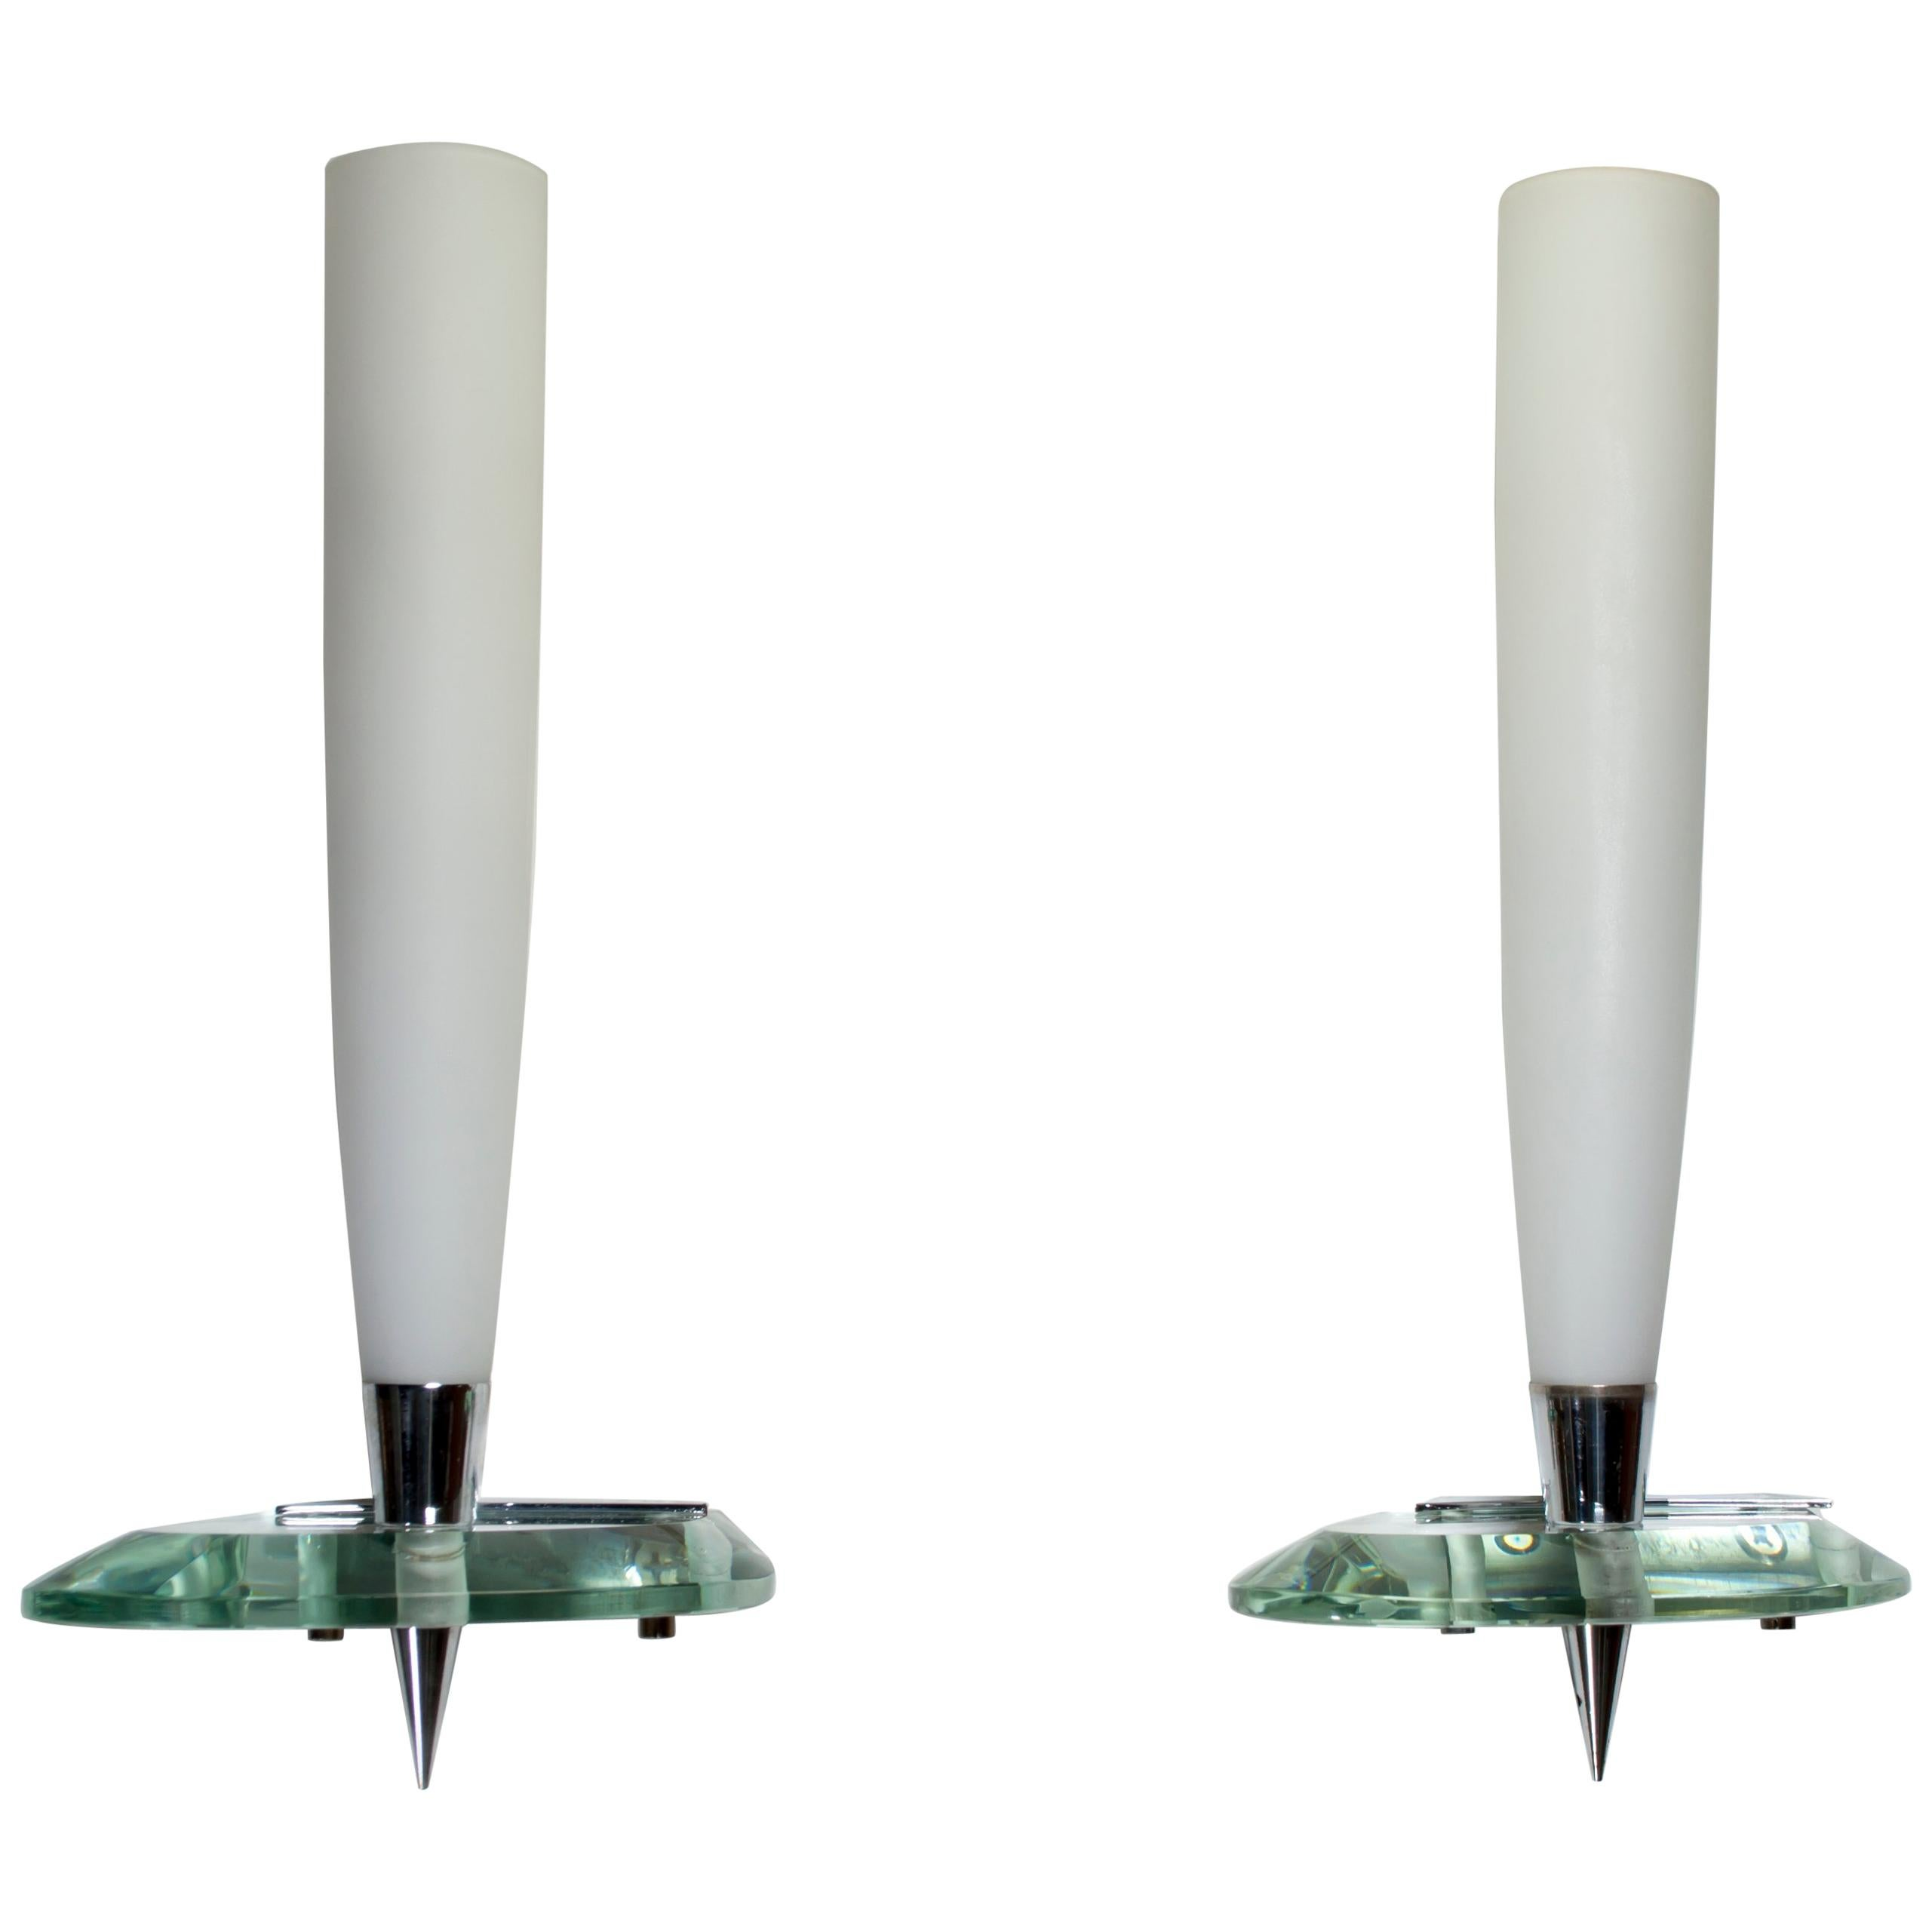 Pair of Max Ingrand Italian Satined Glass Sconces by Fontana Arte, 1950s